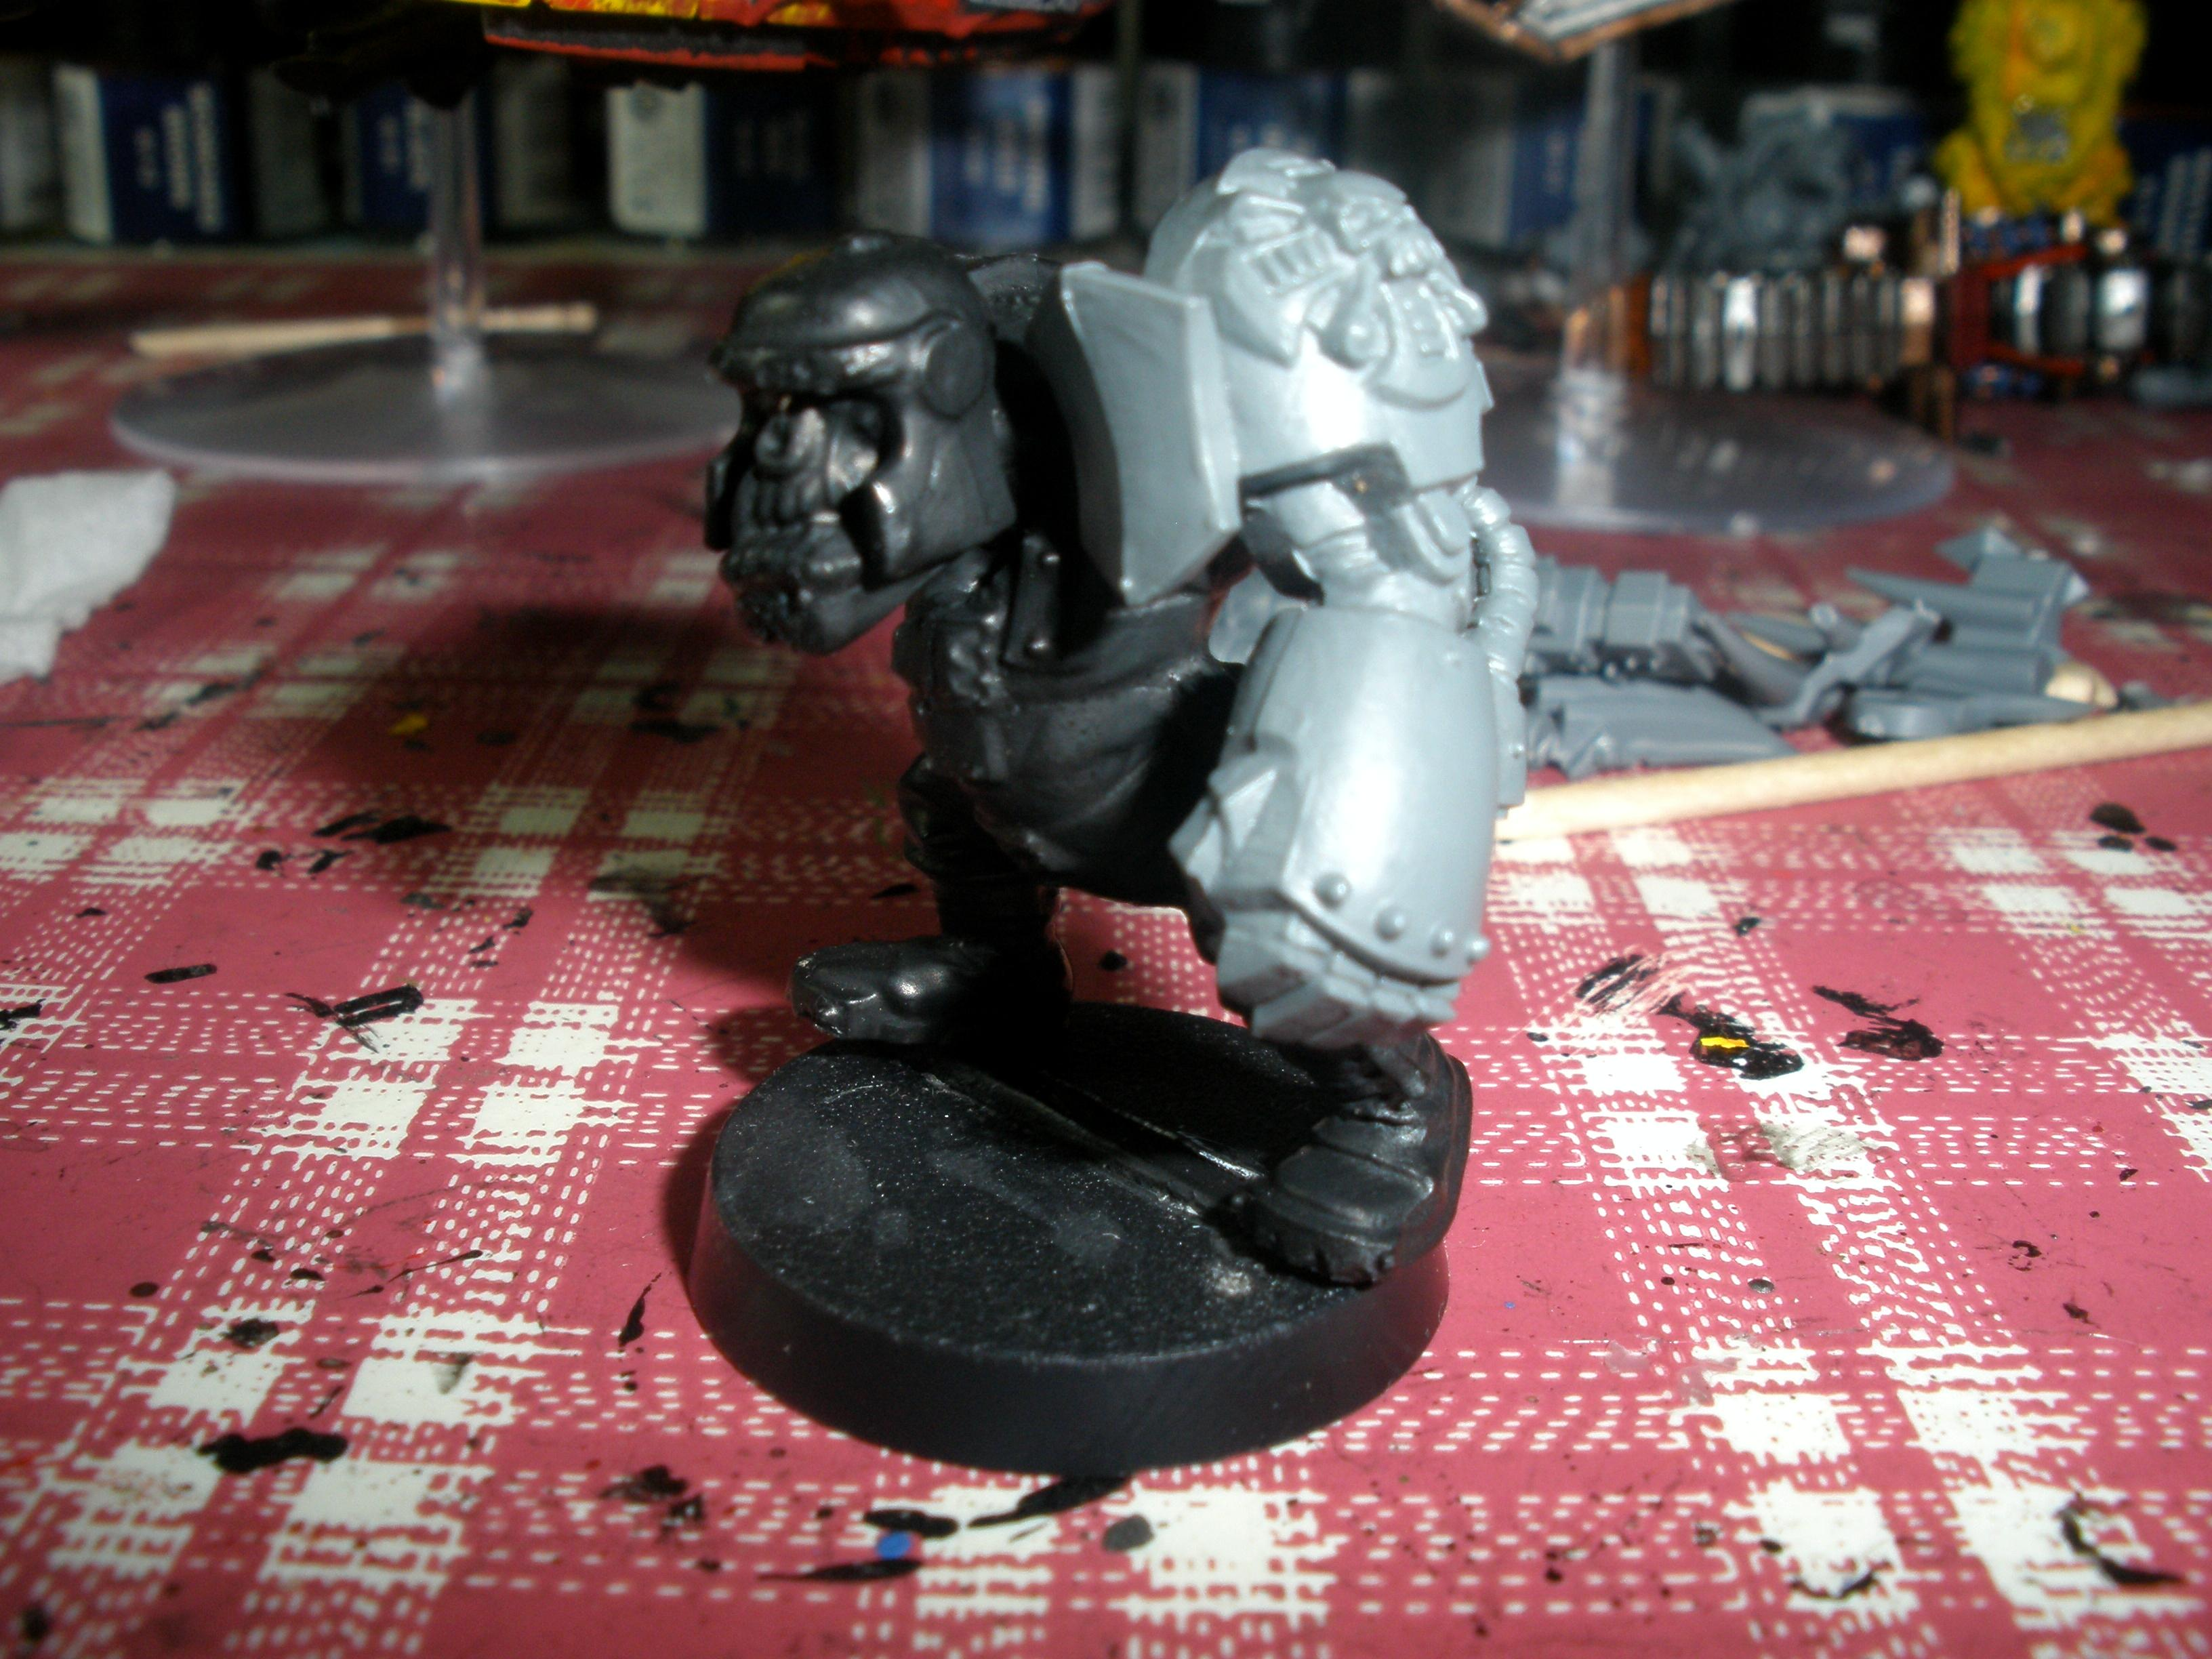 Ork with Power Fist